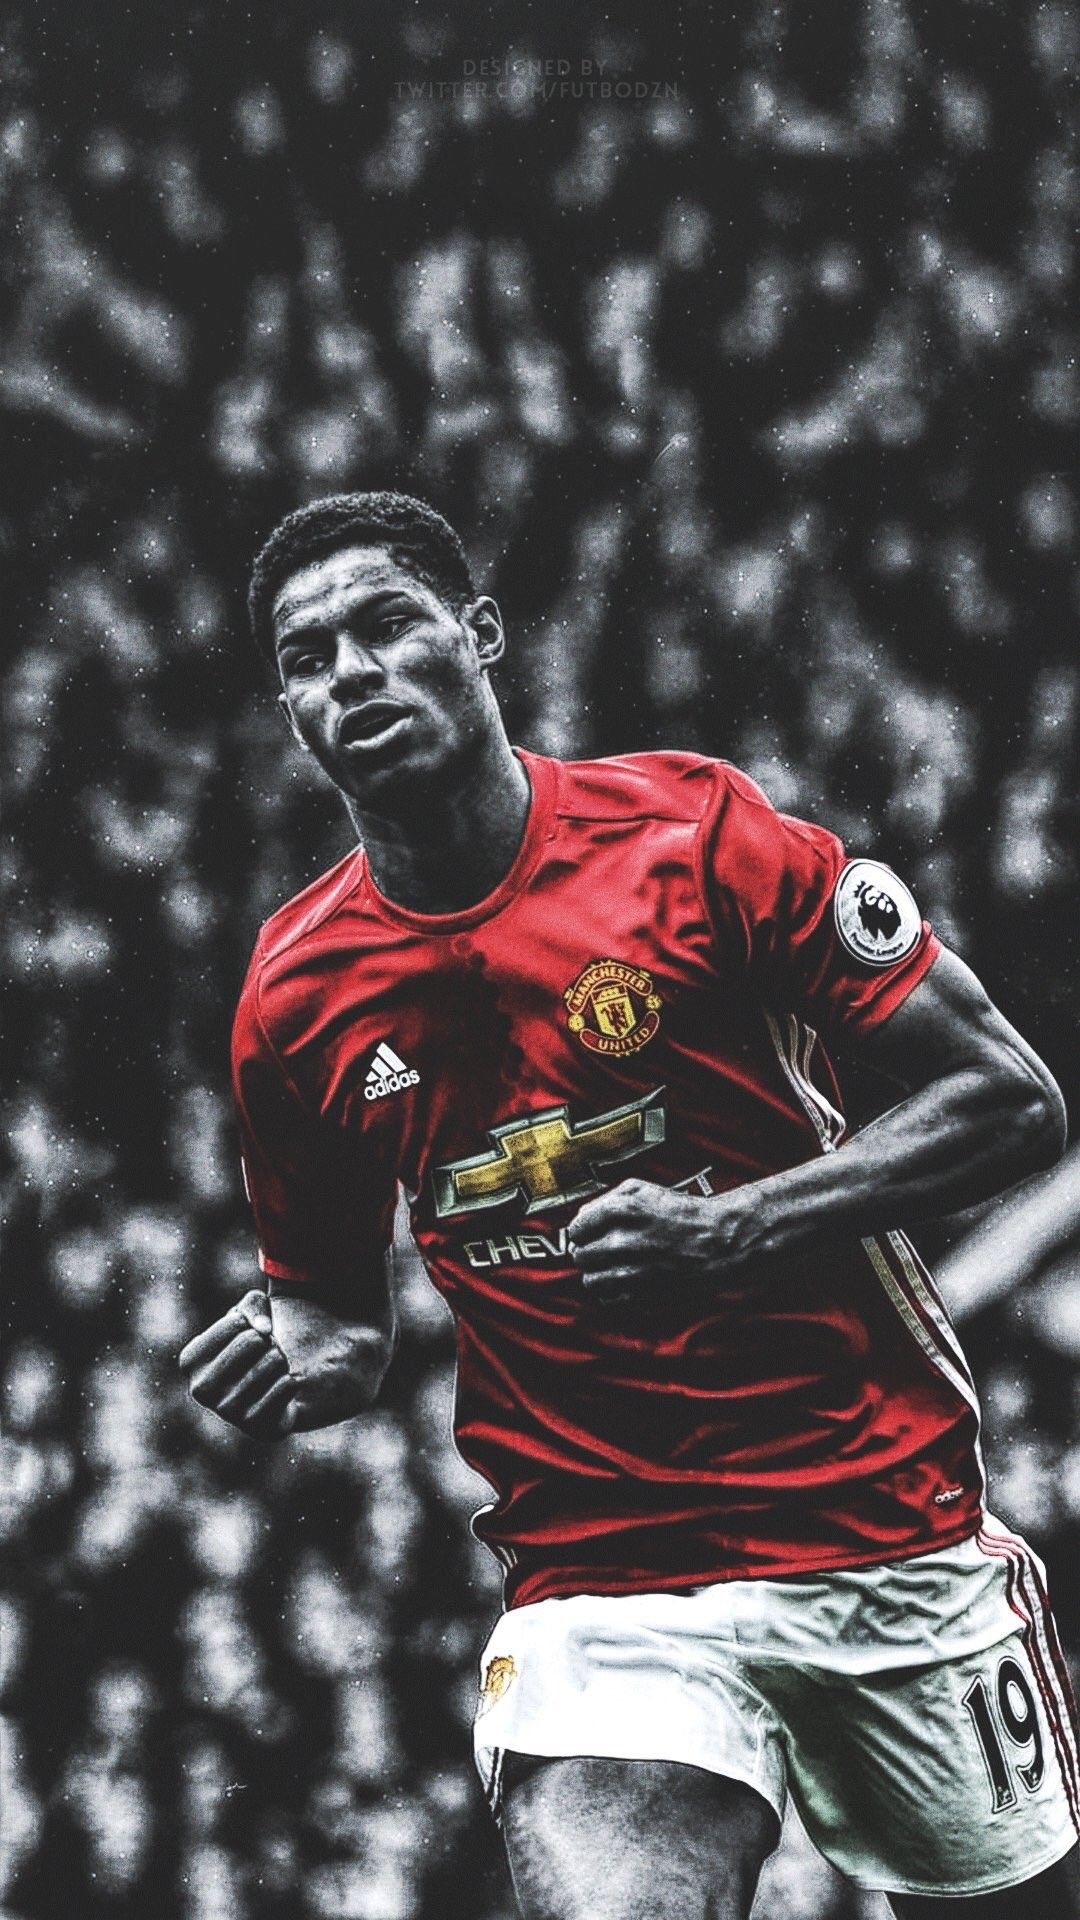 Luxury Paul Pogba Wallpaper Iphone Manchester United Wallpaper Manchester United Team Manchester United